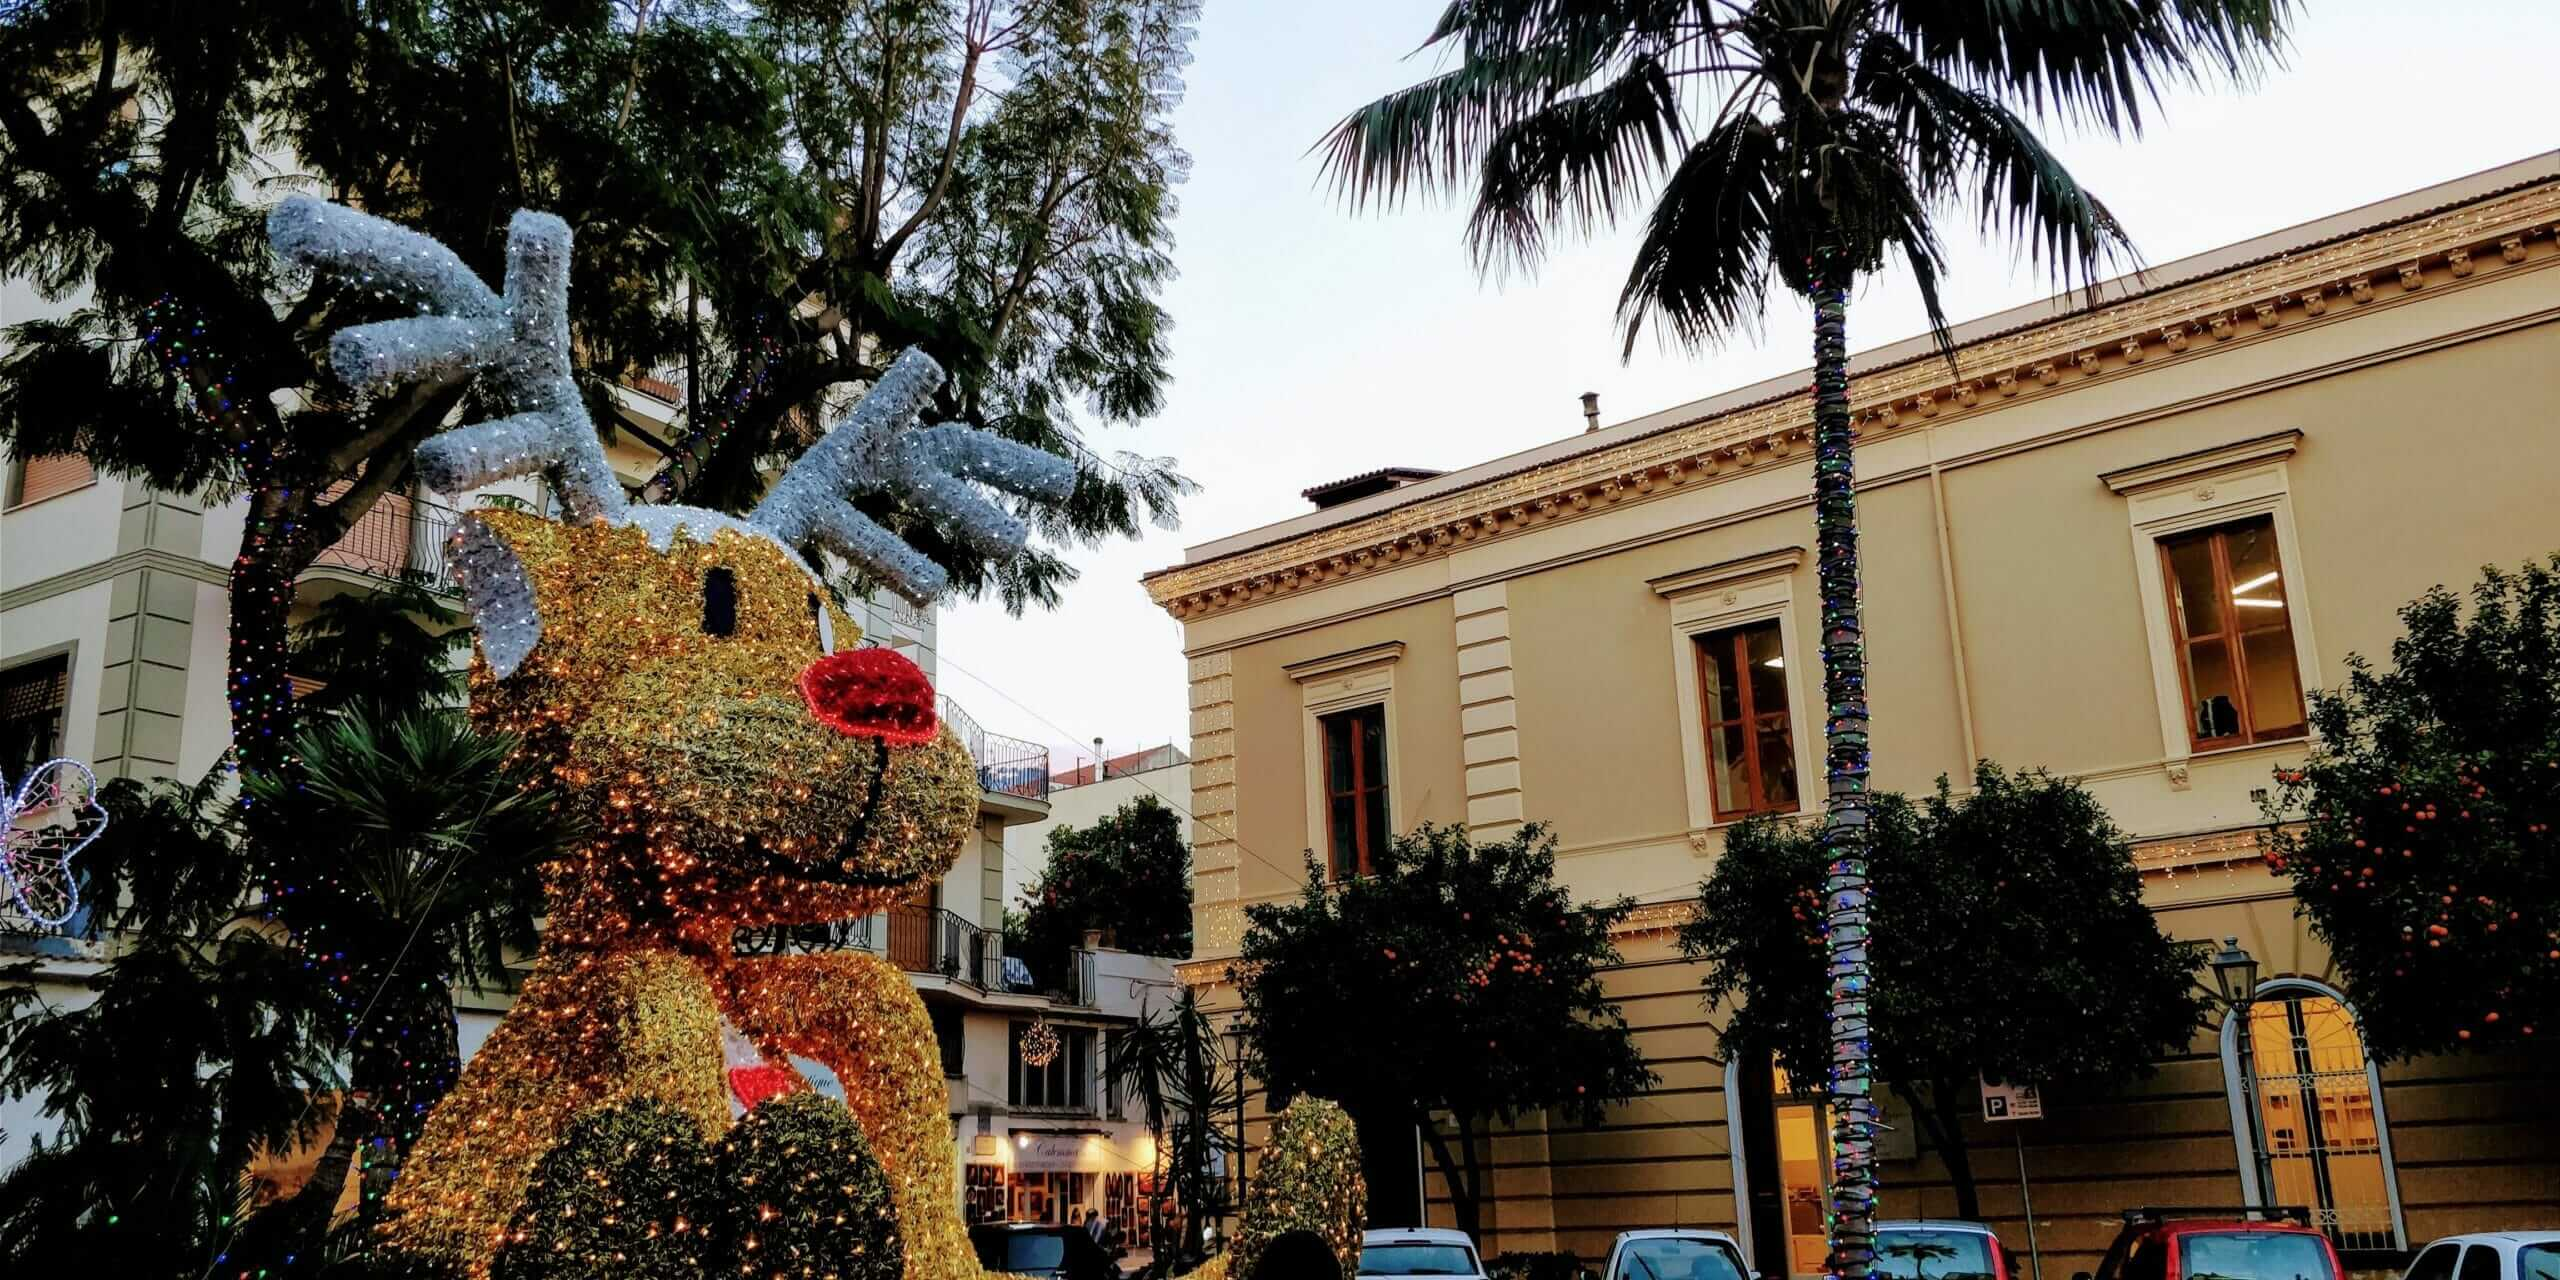 Orange and palm trees decorated with Christmas lights at the end of January in Sorrento